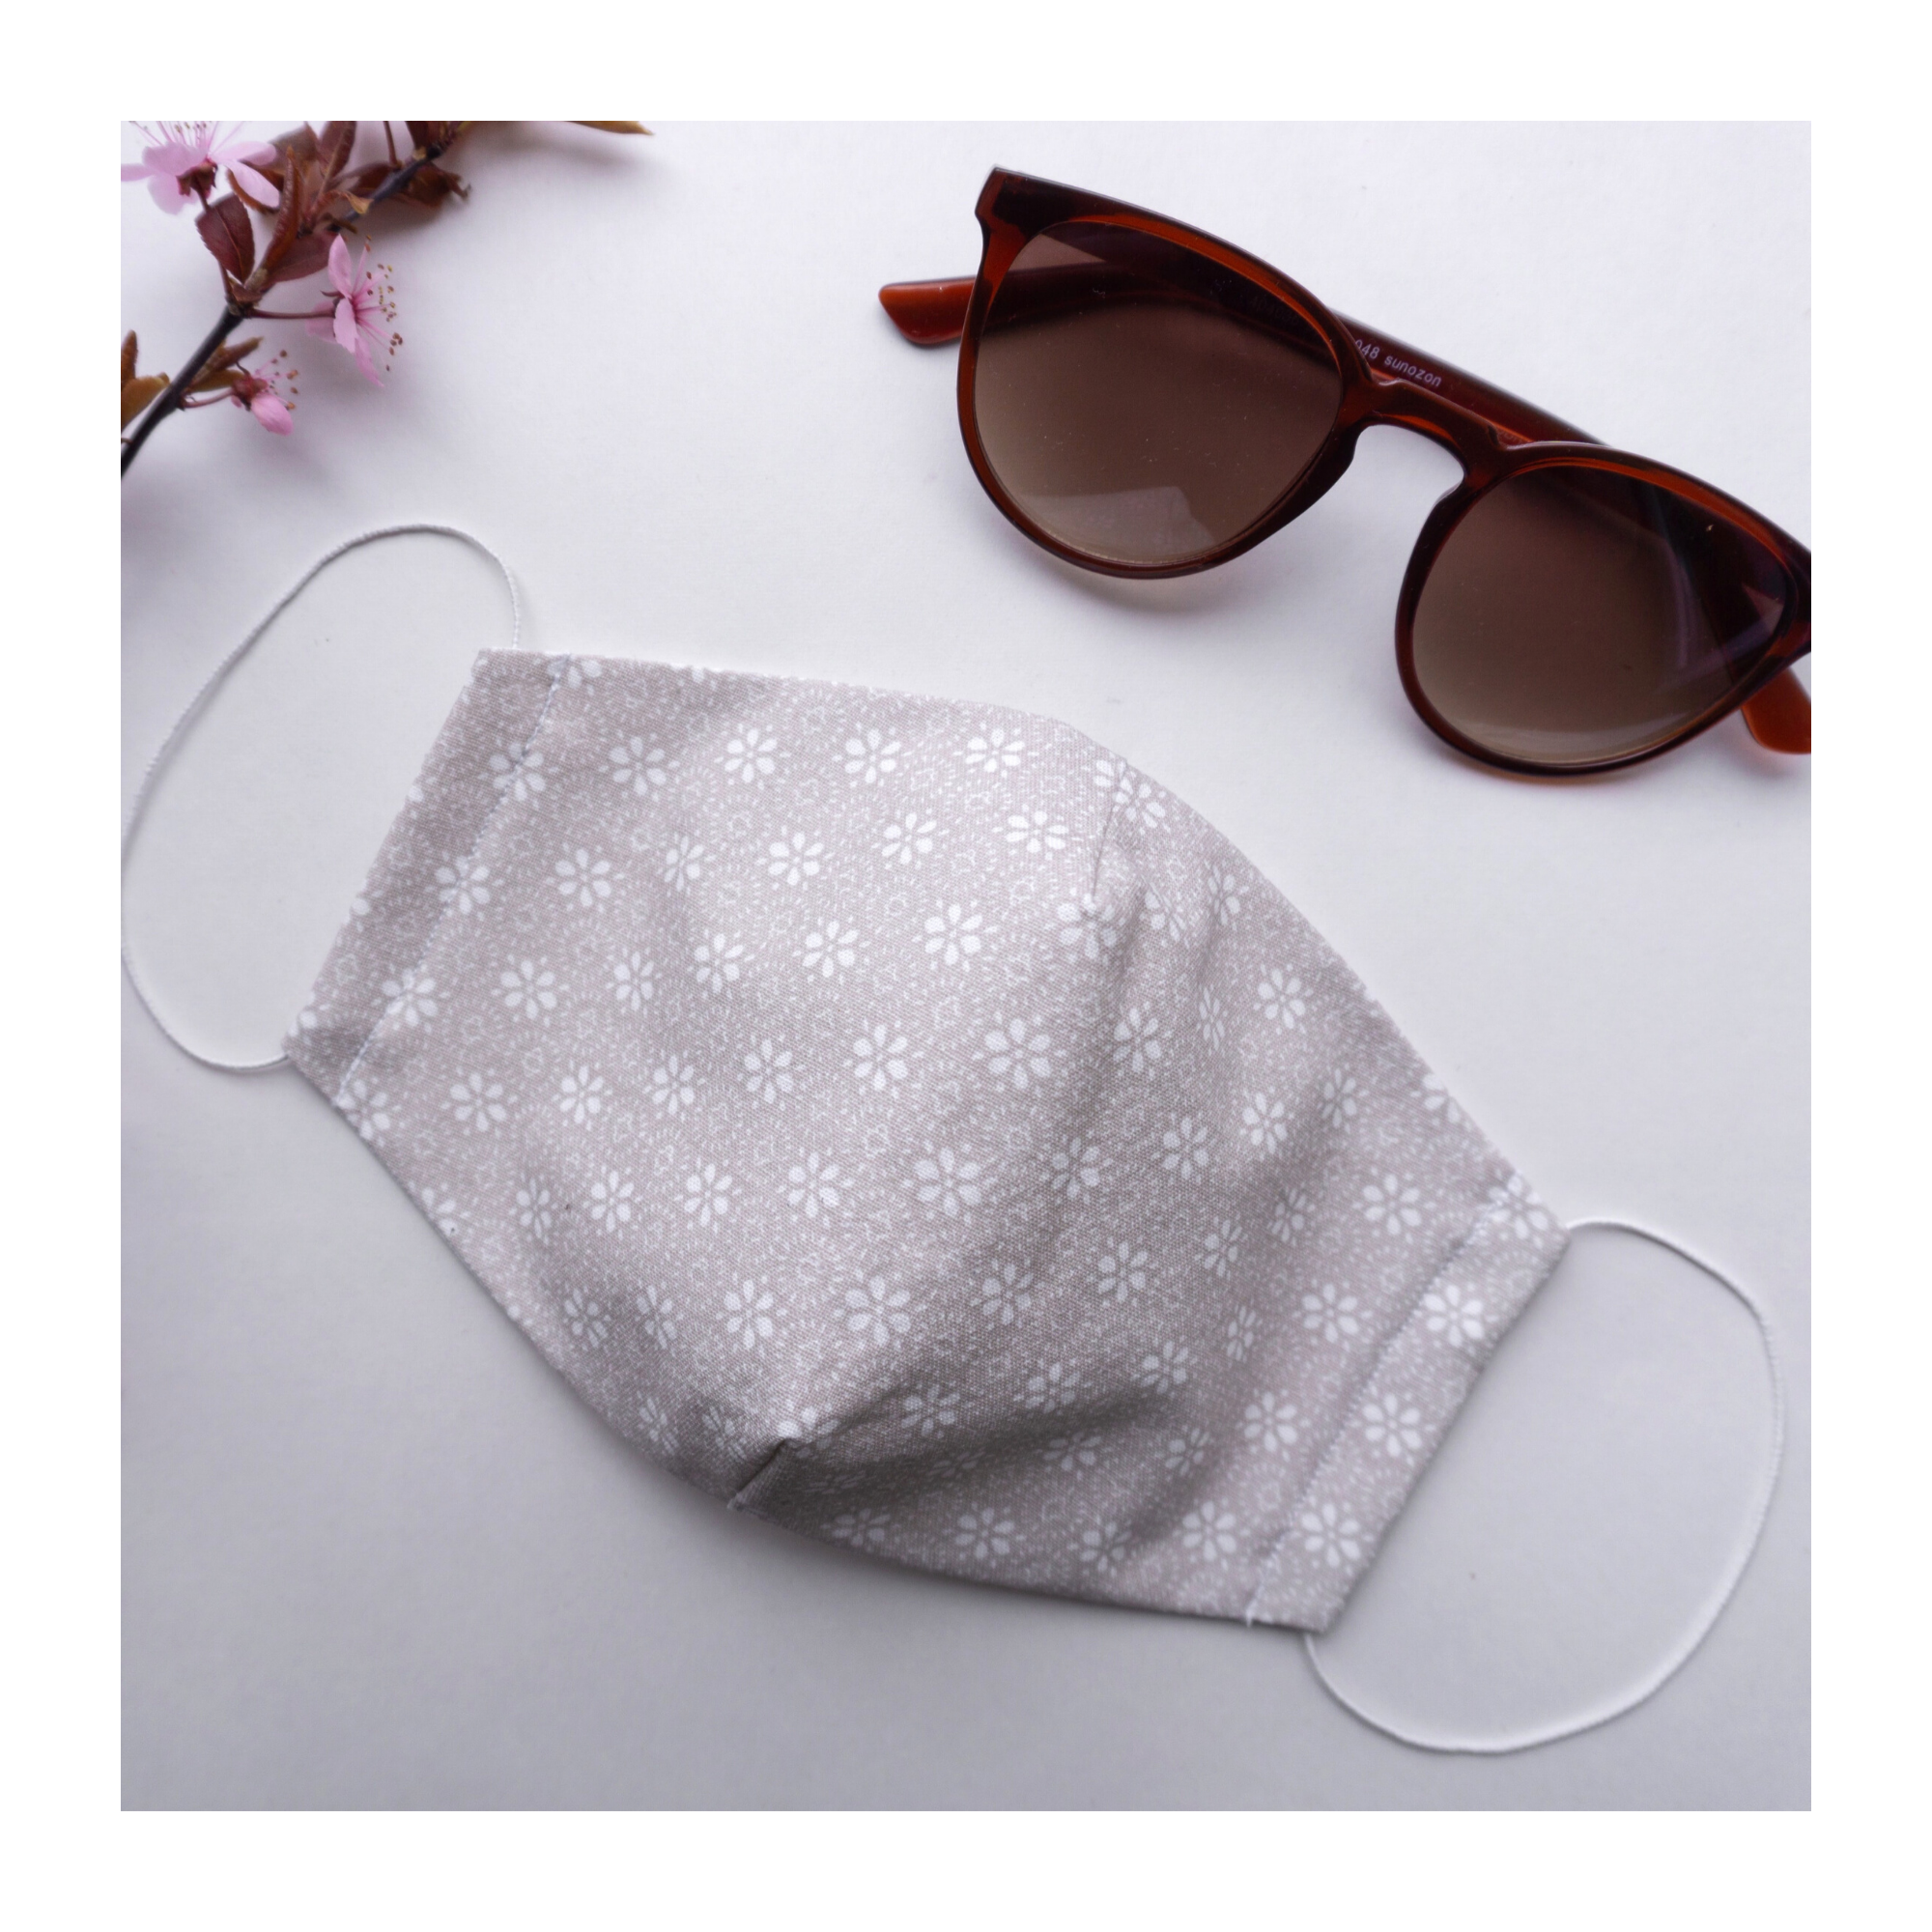 A fabric face mask lying next to a pair of sunglasses and pink flower